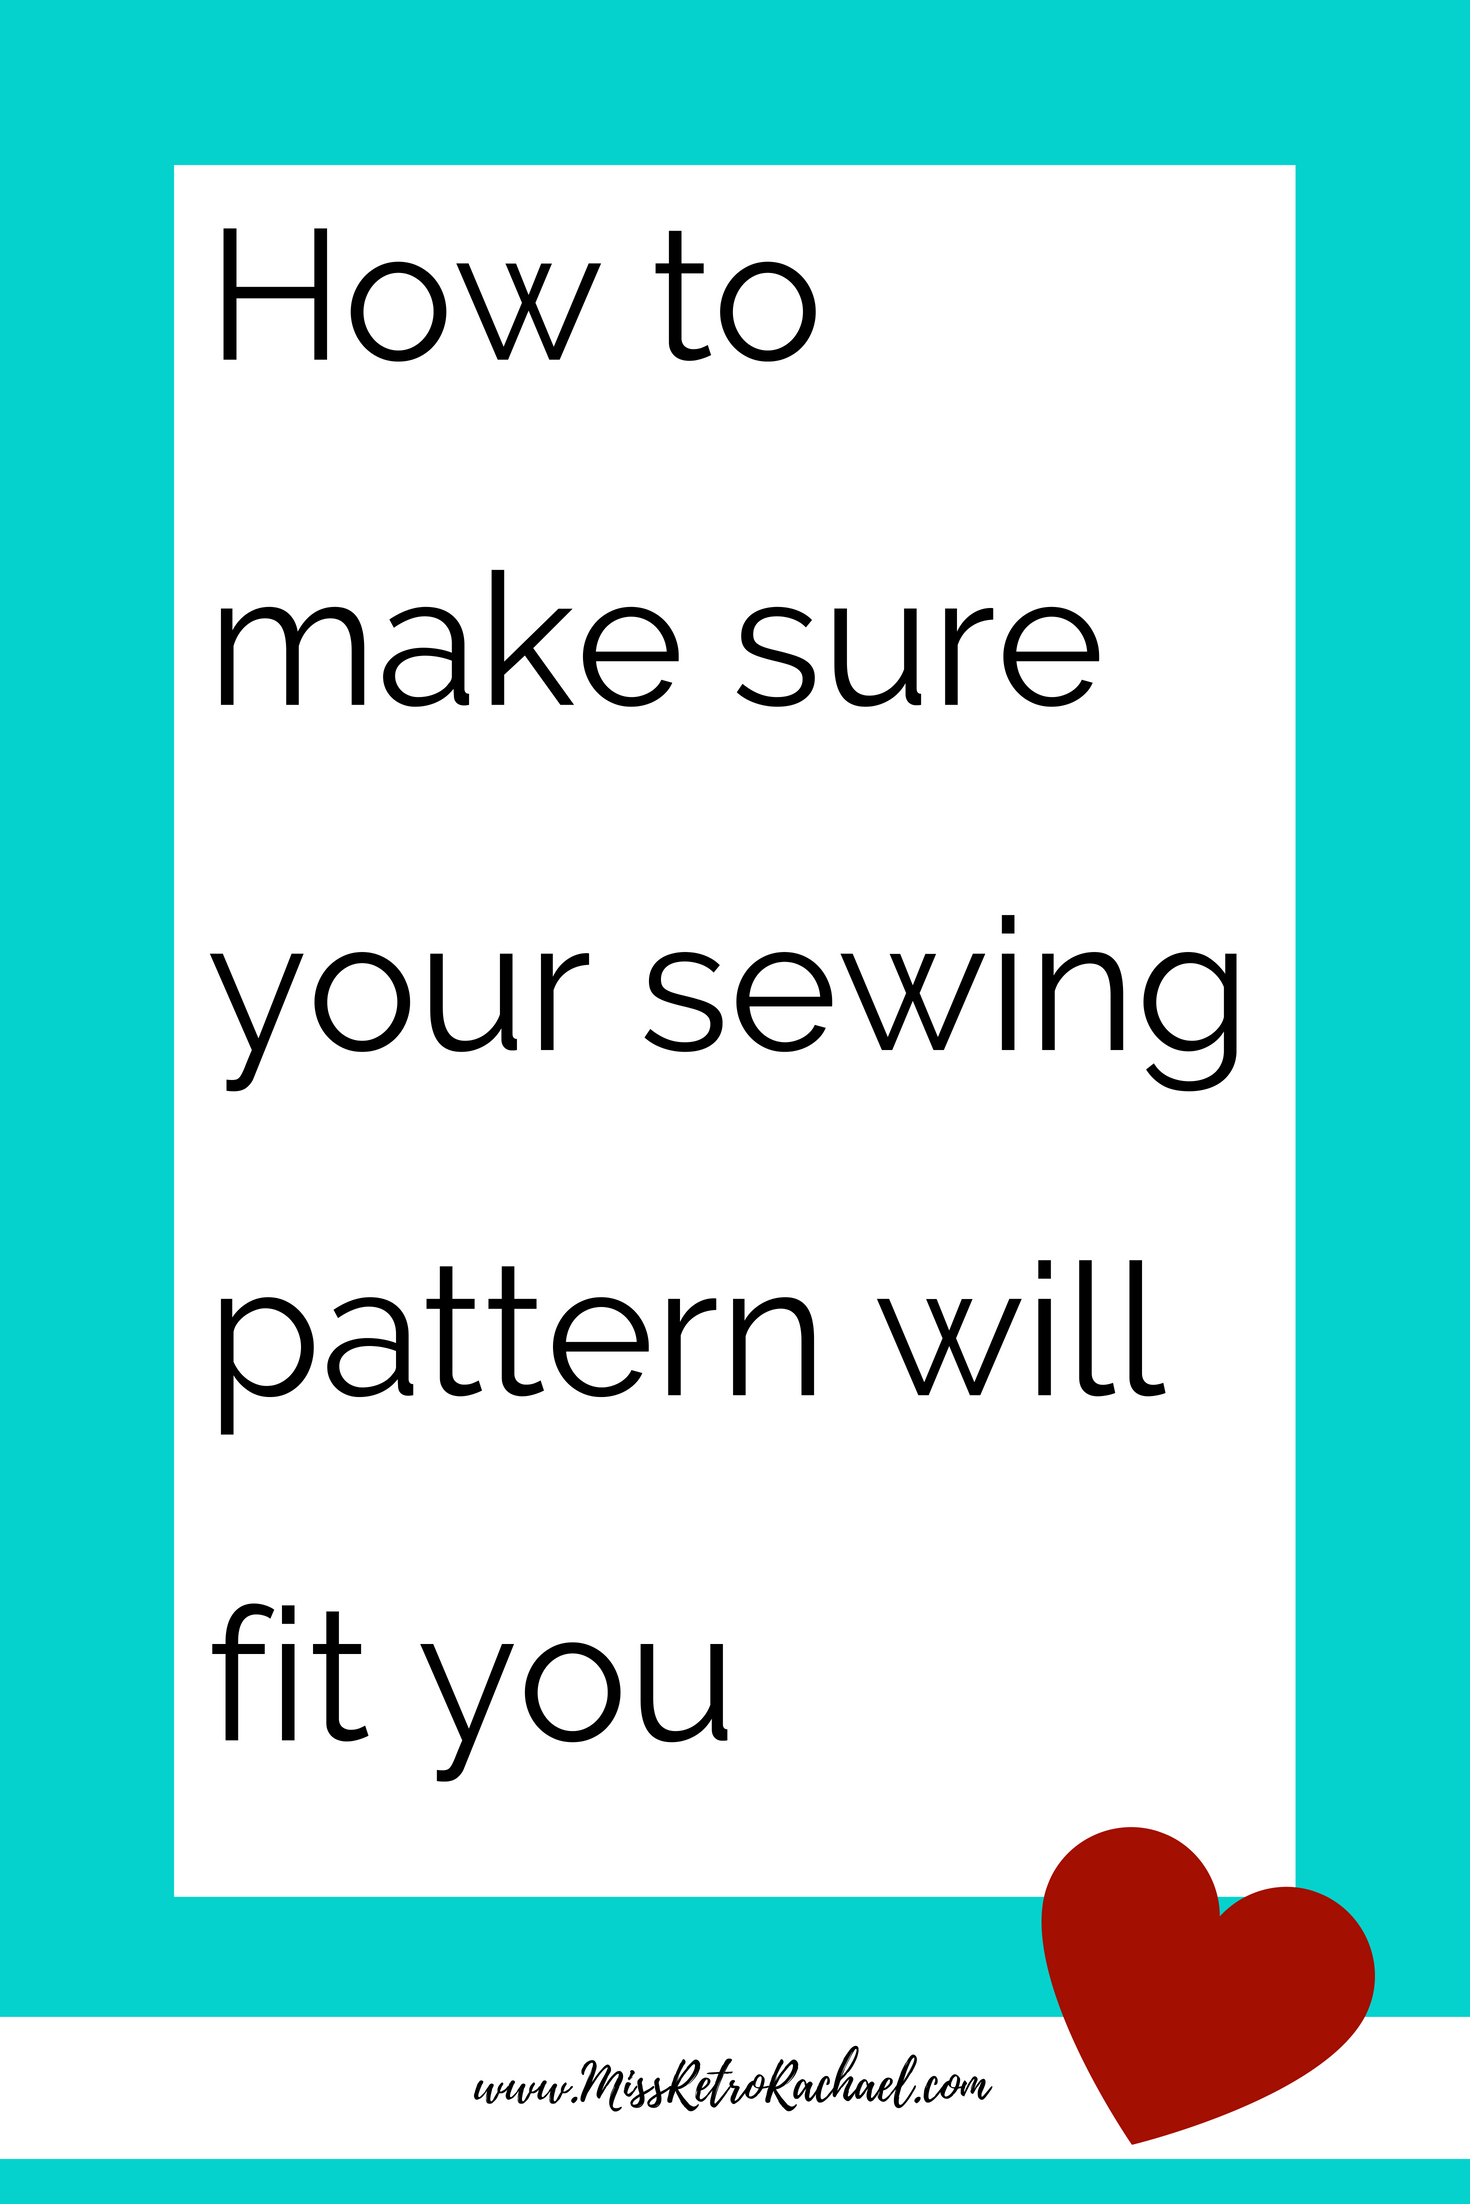 bfbfc4ea52 How to make sure your sewing pattern will fit you every time. Learn about  fitting and why it is so important. #sew #sewing #learntosew #learnto fit # fitting ...